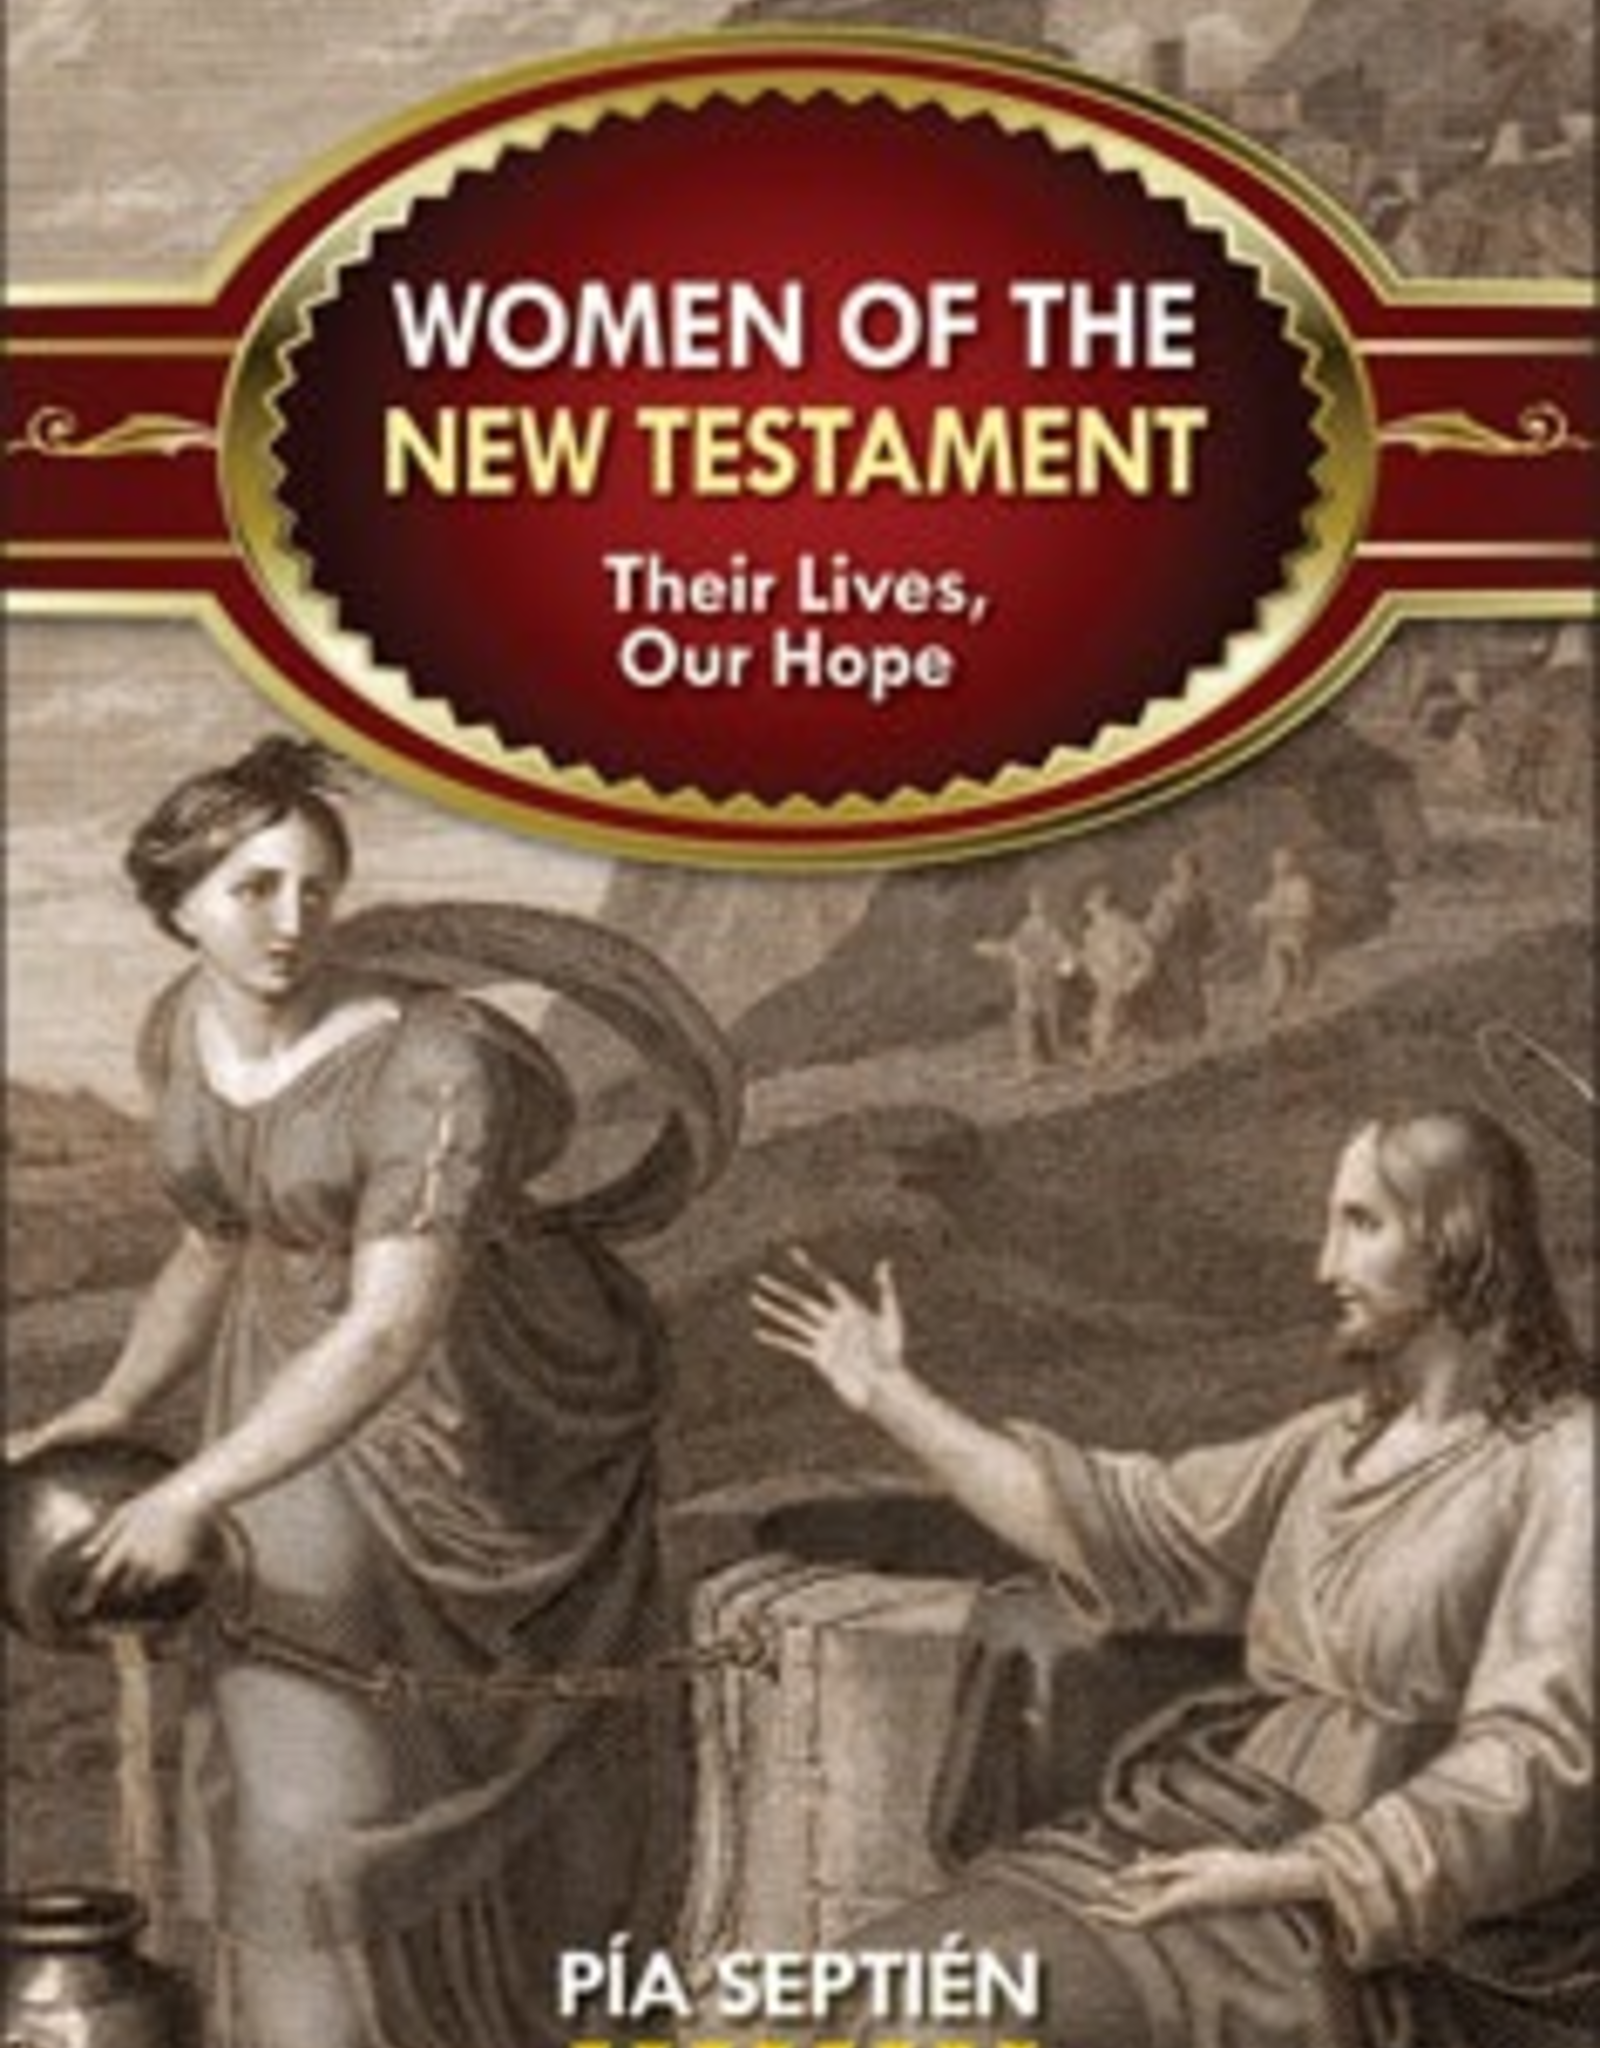 Liguori Women of the New Testament:  Their Lives, Our Hope, by Pia Septien (paperback)